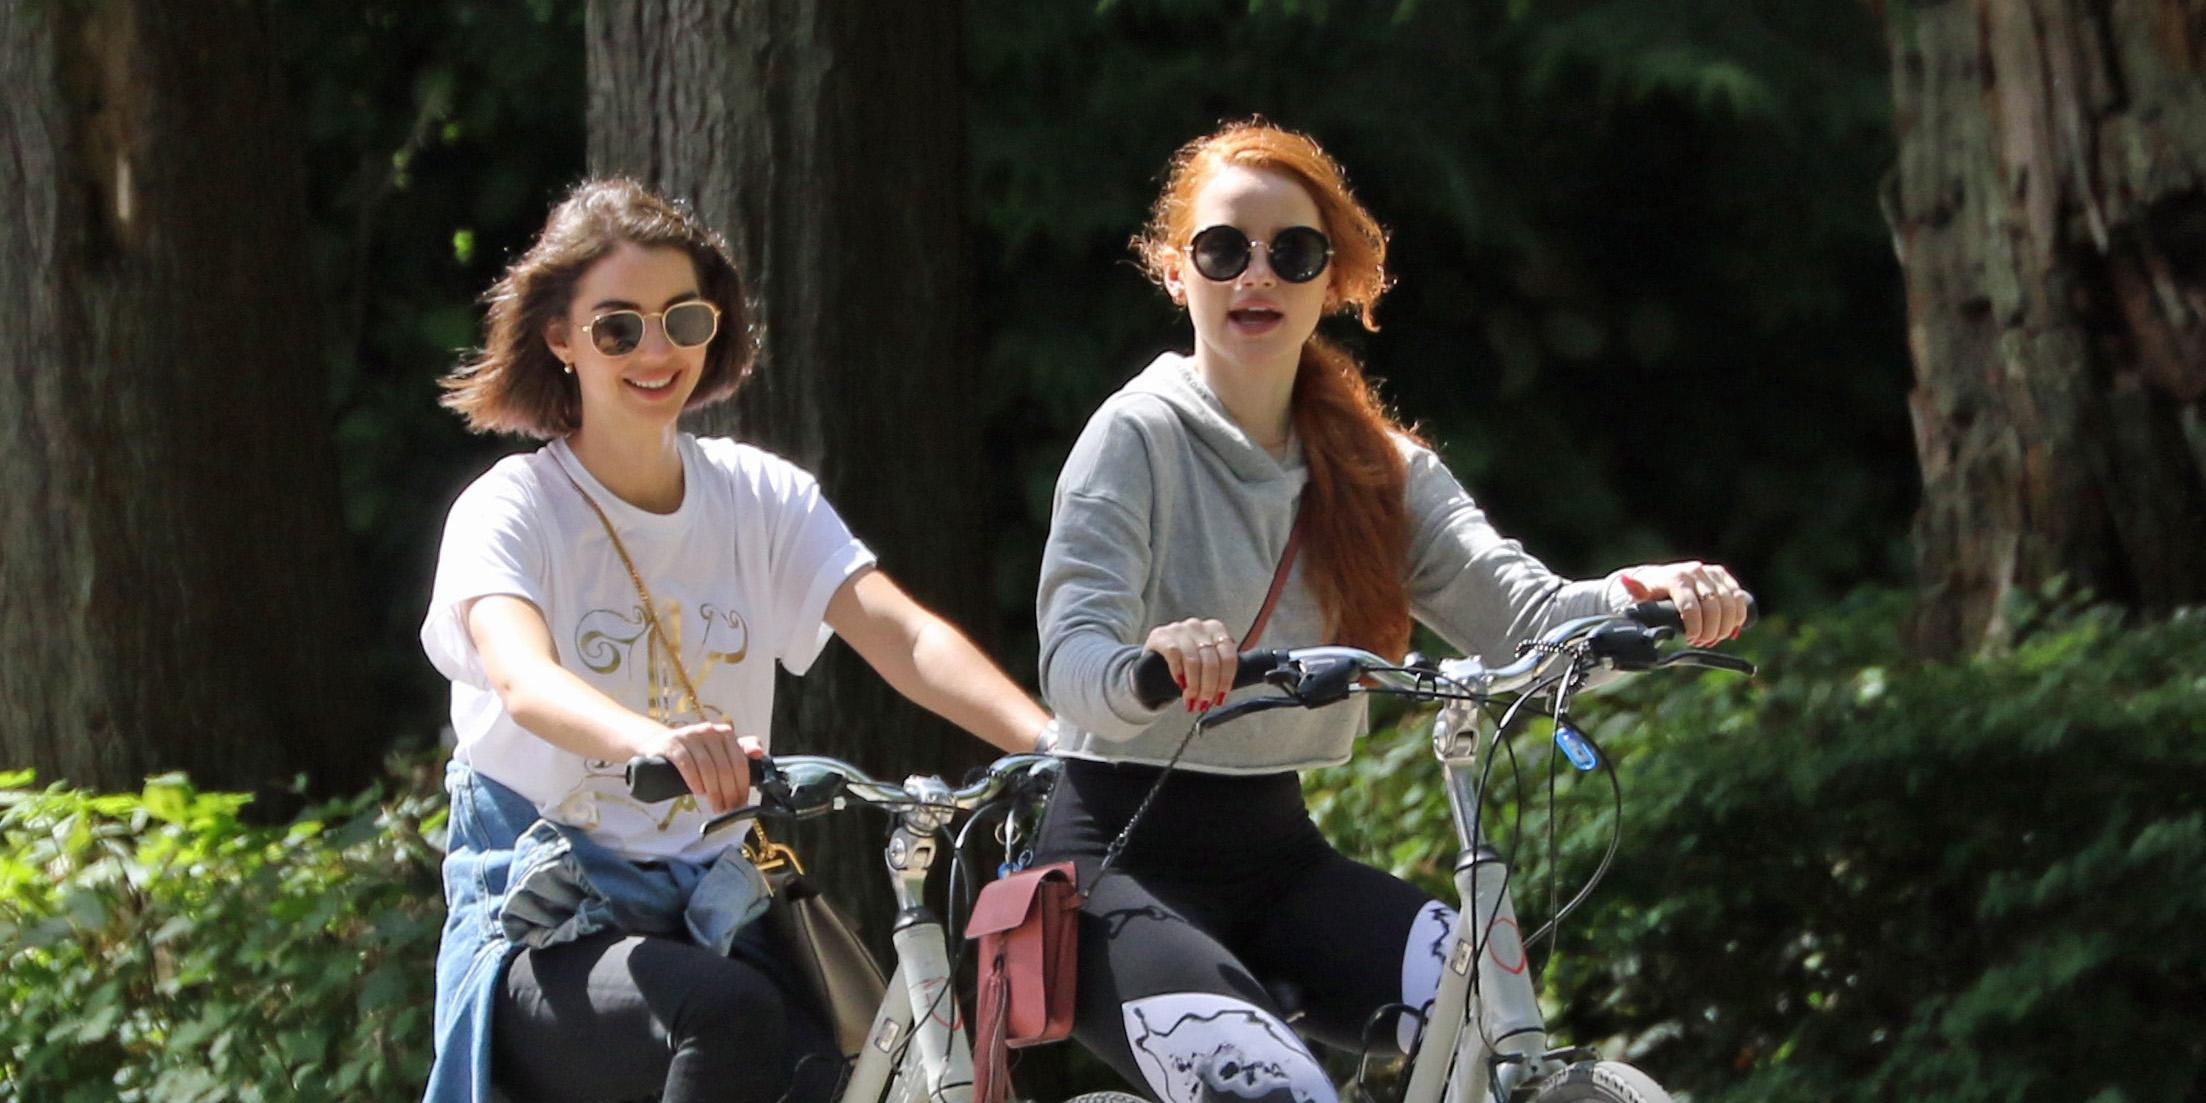 Madelaine Petsch and Adelaide Kane go for a bike ride in Vancouver (PHOTOS)